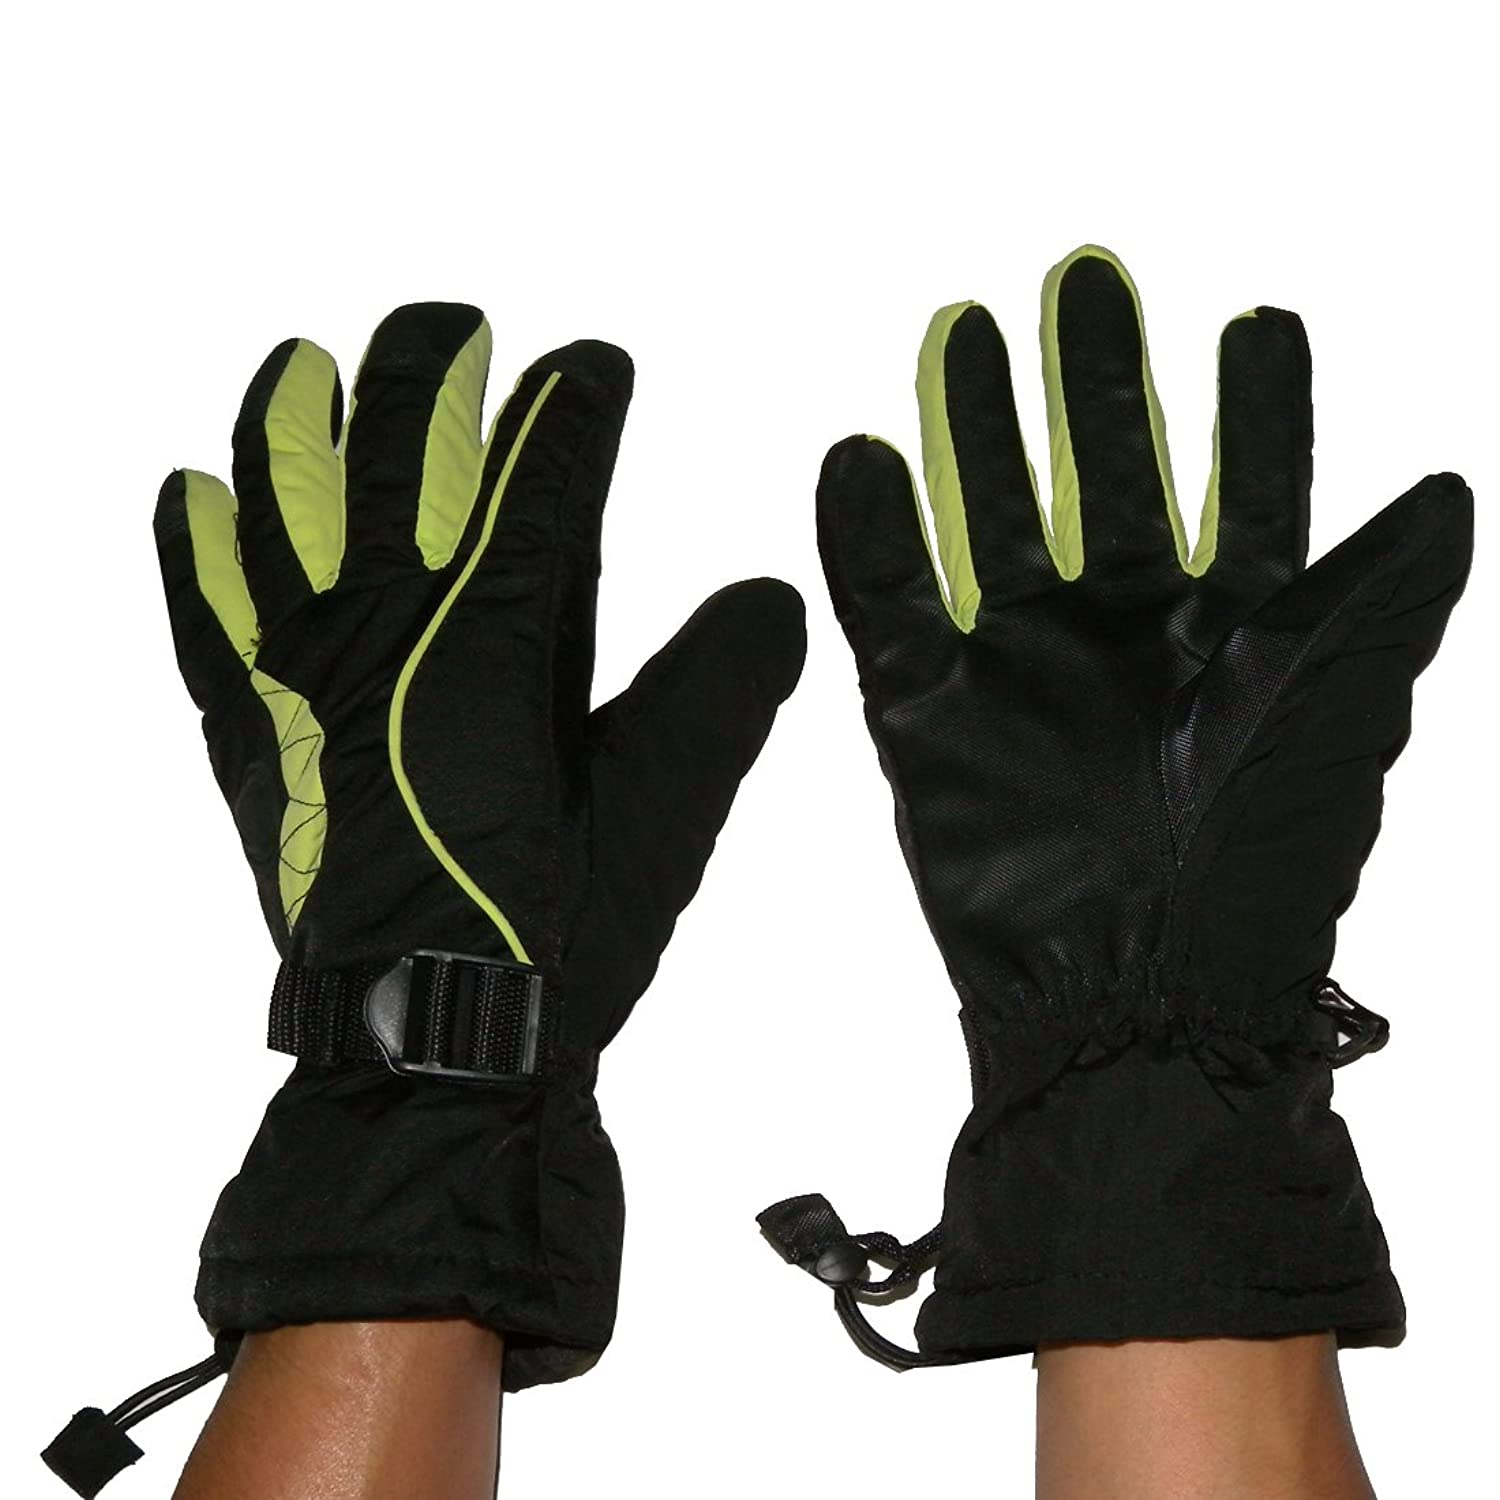 Herren Professionelle Warm & Winddichtes Insulated Winter Ski-Handschuhe mit Innenfutter